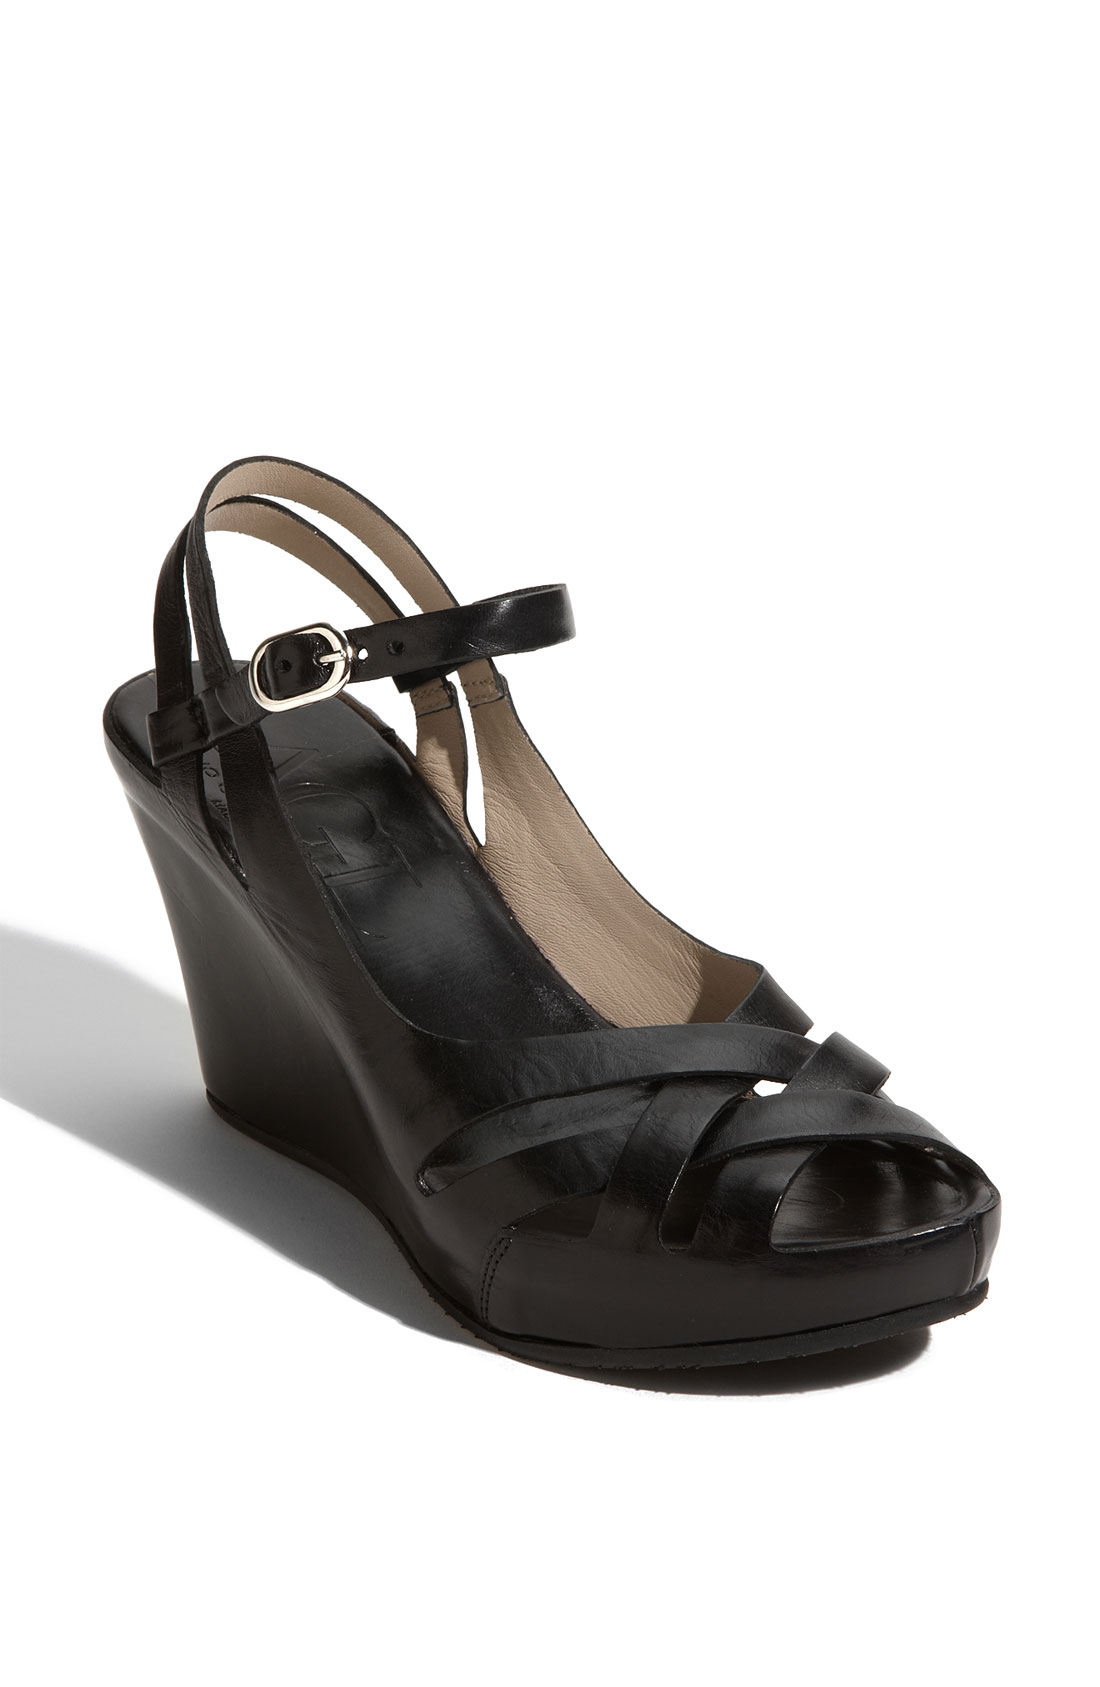 Attilio Giusti Leombruni Wedge Sandal In Black Lyst